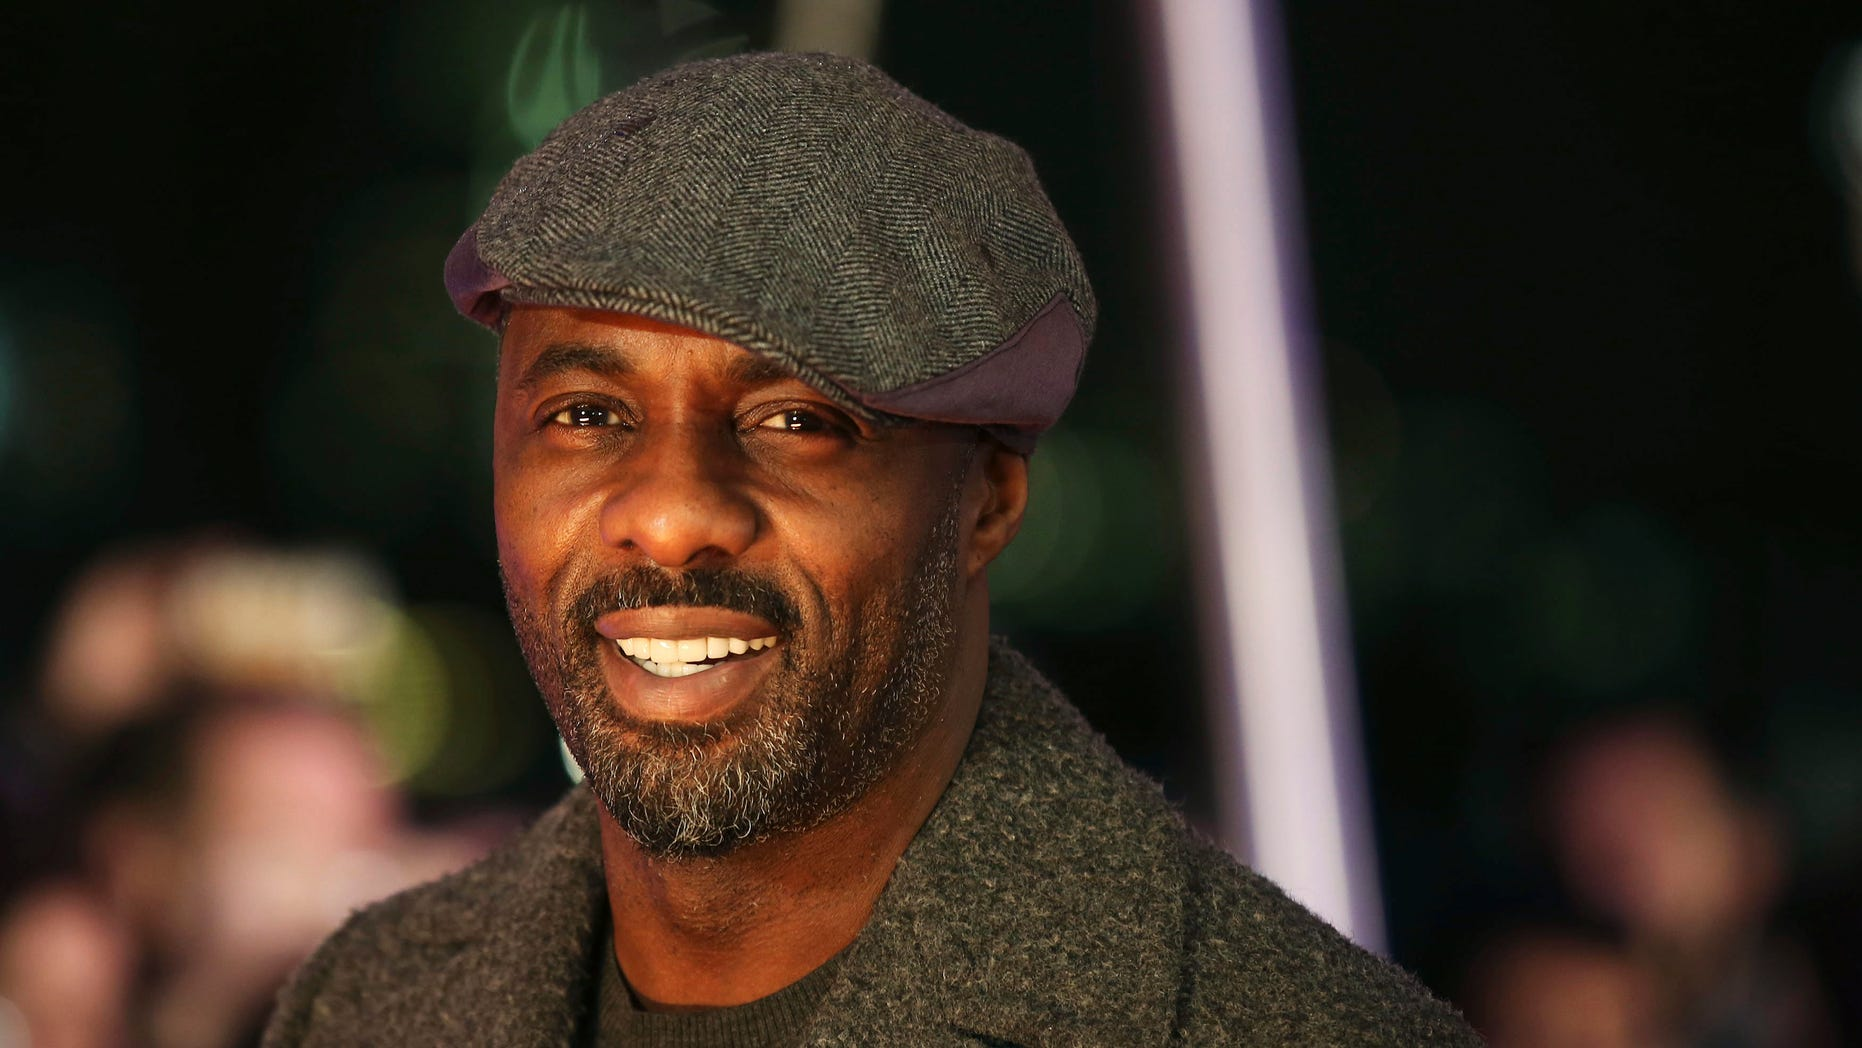 Actor Idris Elba has launched his music label a346da4011a